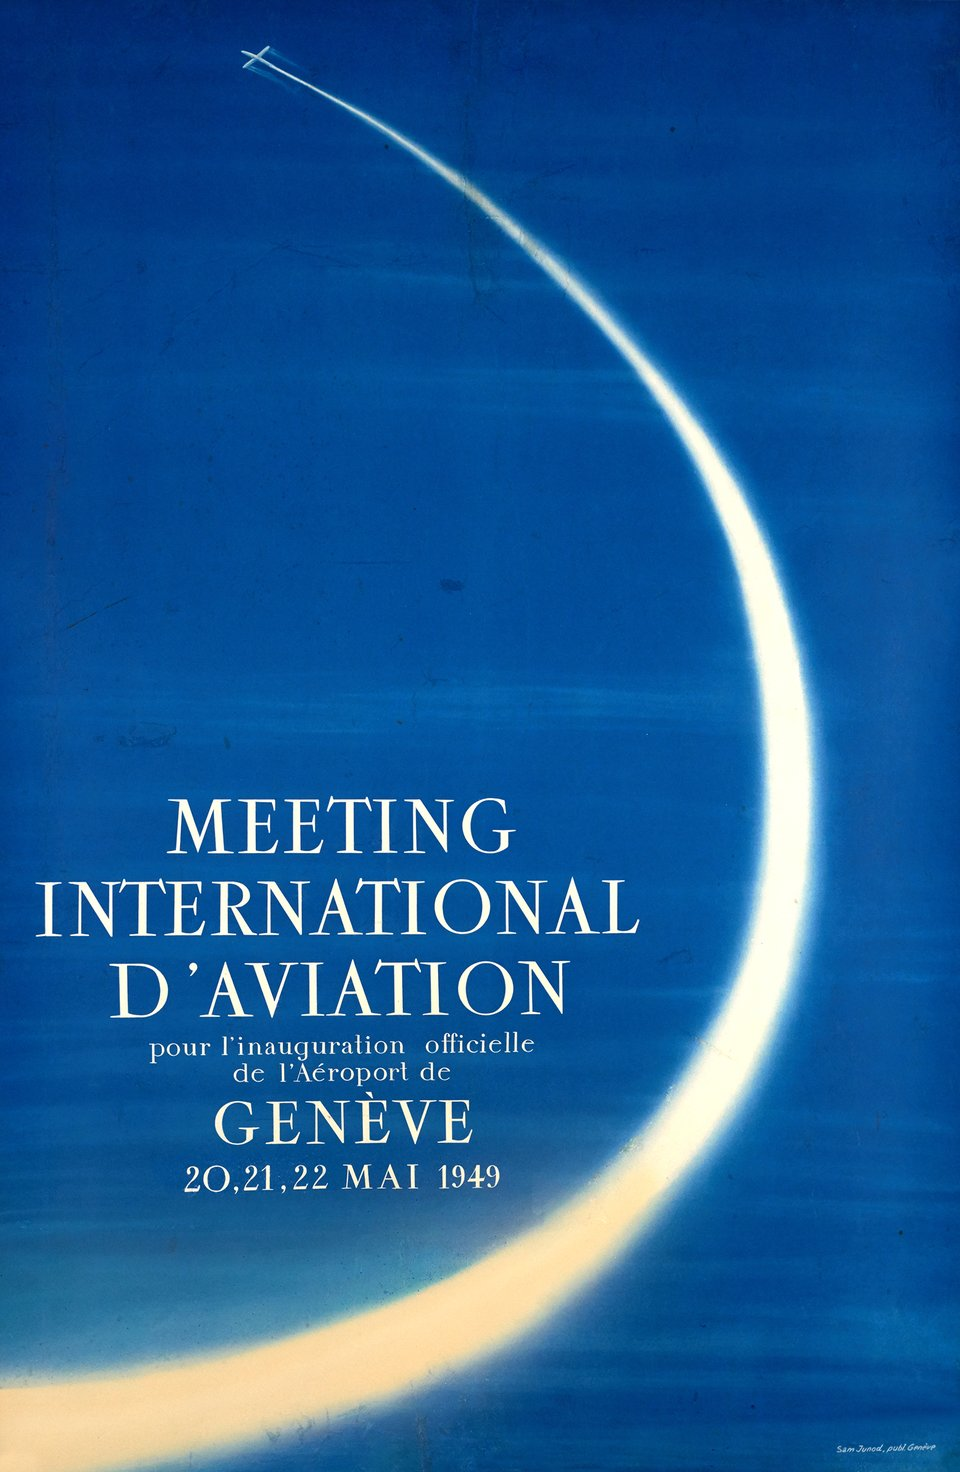 Meeting International d'Aviation, pour l'inauguration officielle de l'aéroport de Genève – Vintage poster – Sam JUNOD – 1949